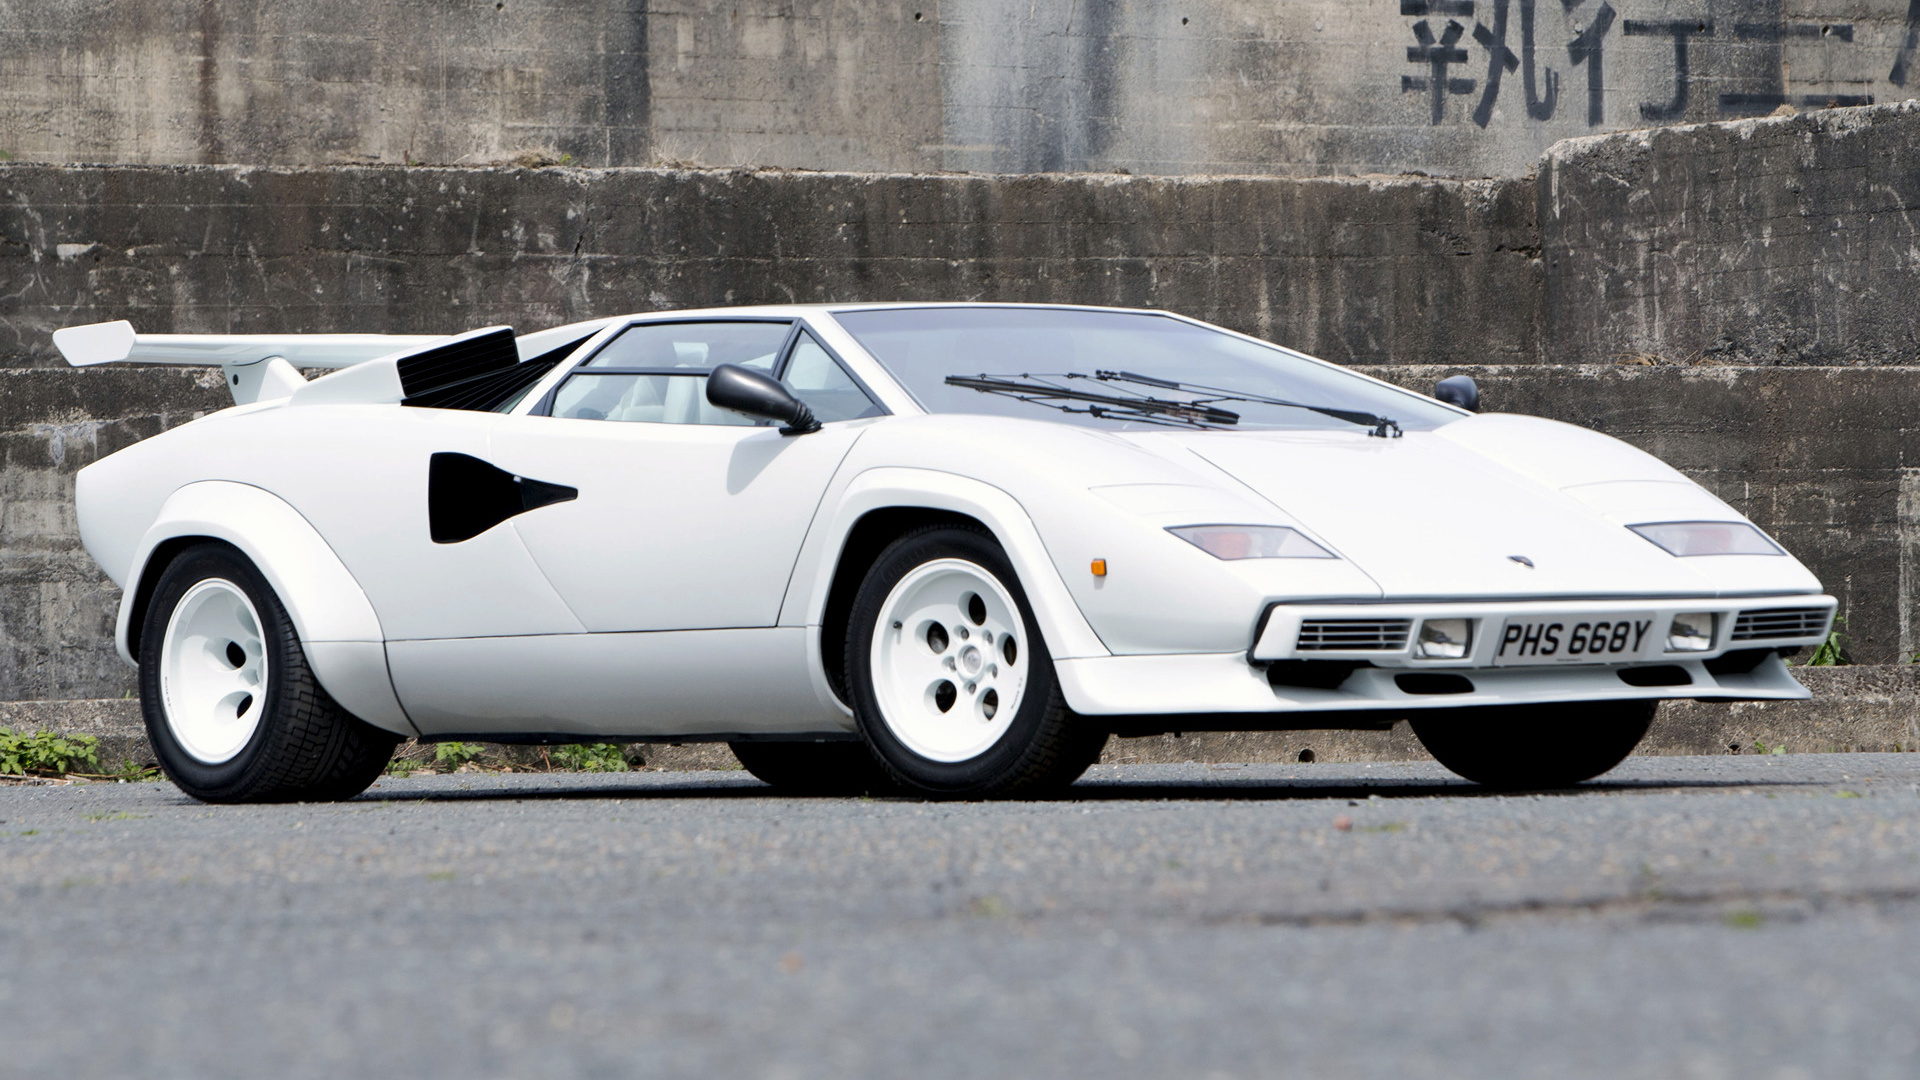 Lamborghini Countach Lp500 S 1982 Wallpapers And Hd